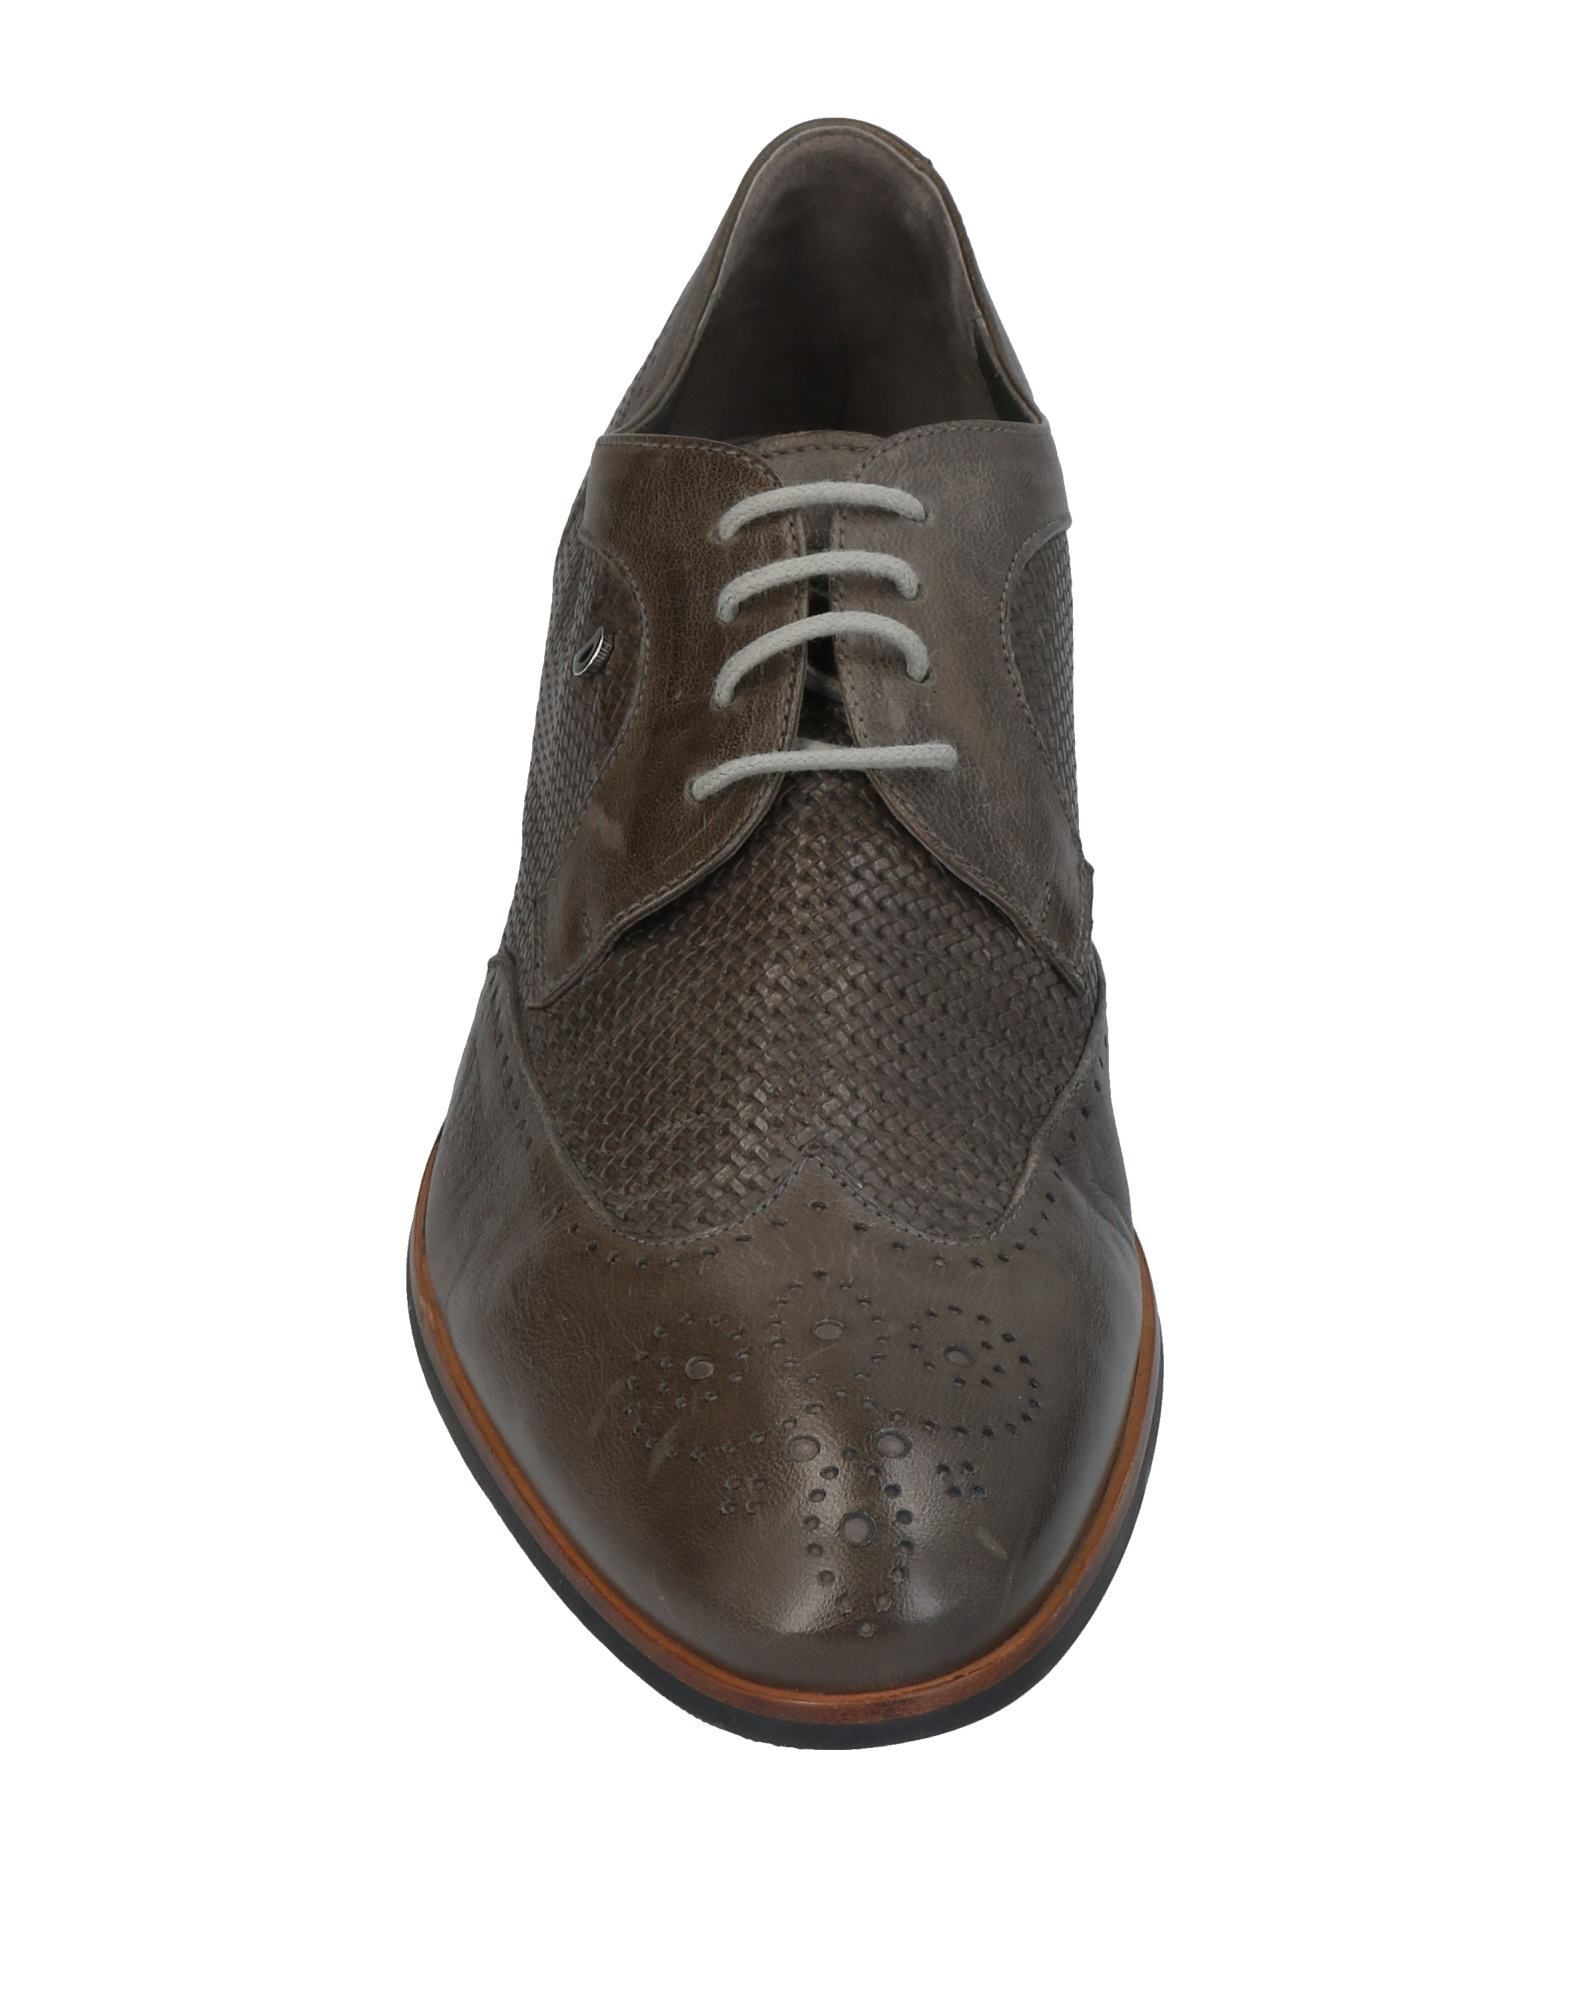 Chaussures À Lacets Dibrera By Paolo Zanoli Homme - Chaussures À Lacets Dibrera By Paolo Zanoli sur